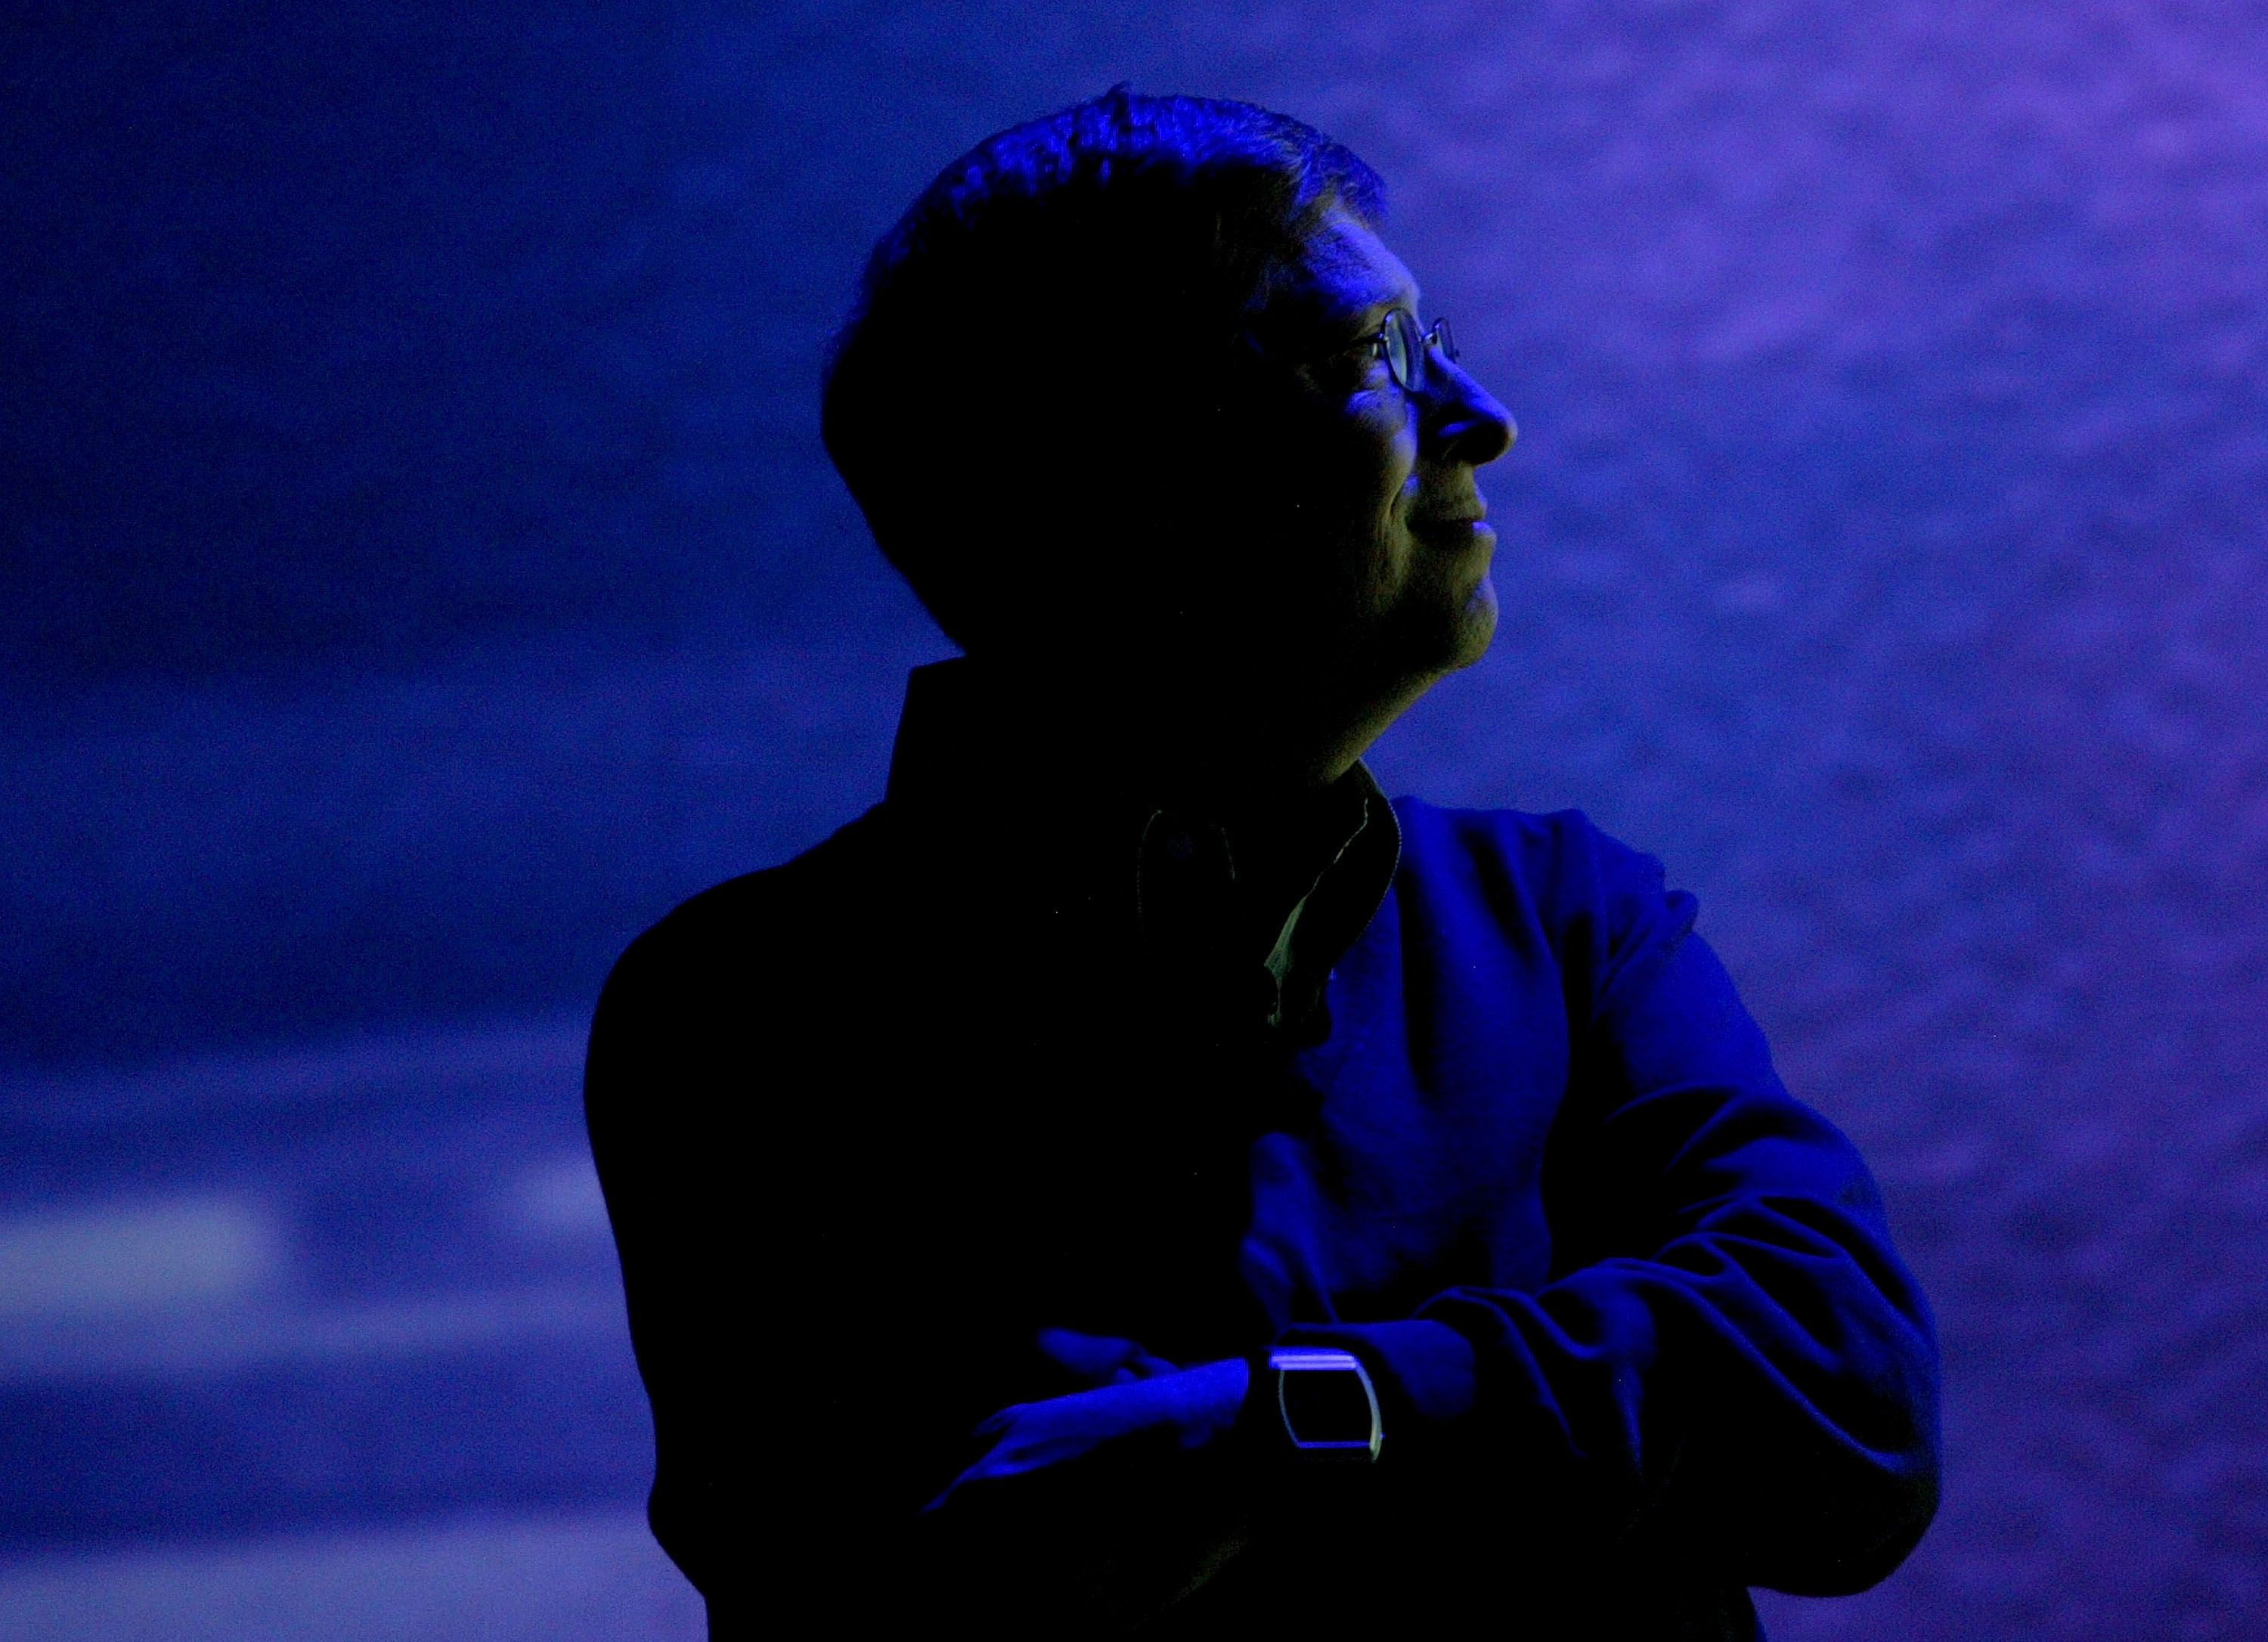 Bill Gates Will Have to Wait a While to Block the Sun